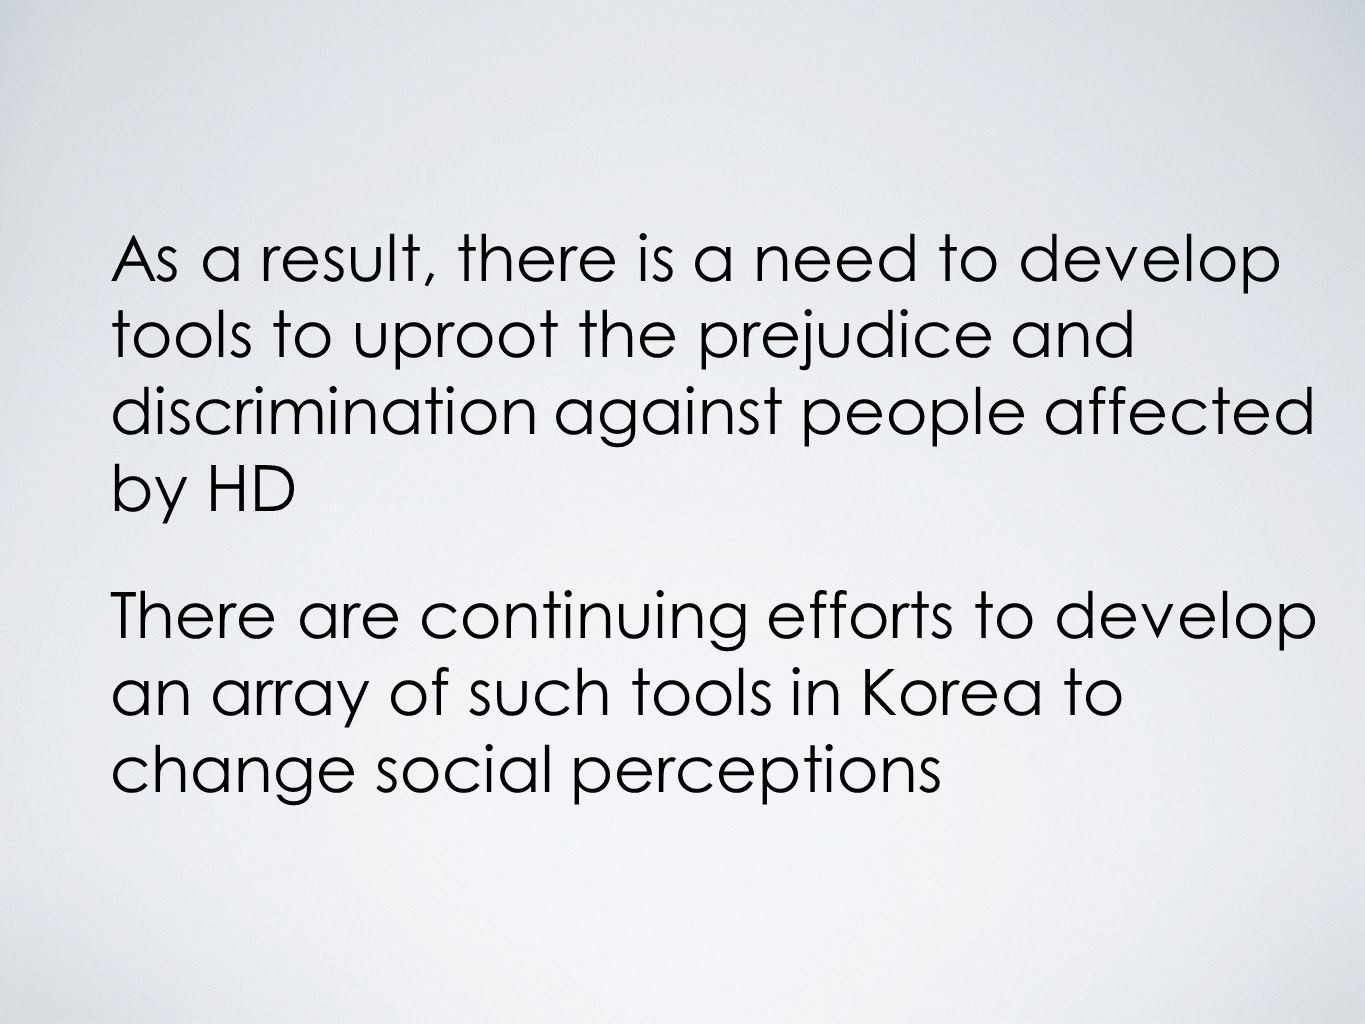 As a result, there is a need to develop tools to uproot the prejudice and discrimination against people affected by HD There are continuing efforts to develop an array of such tools in Korea to change social perceptions